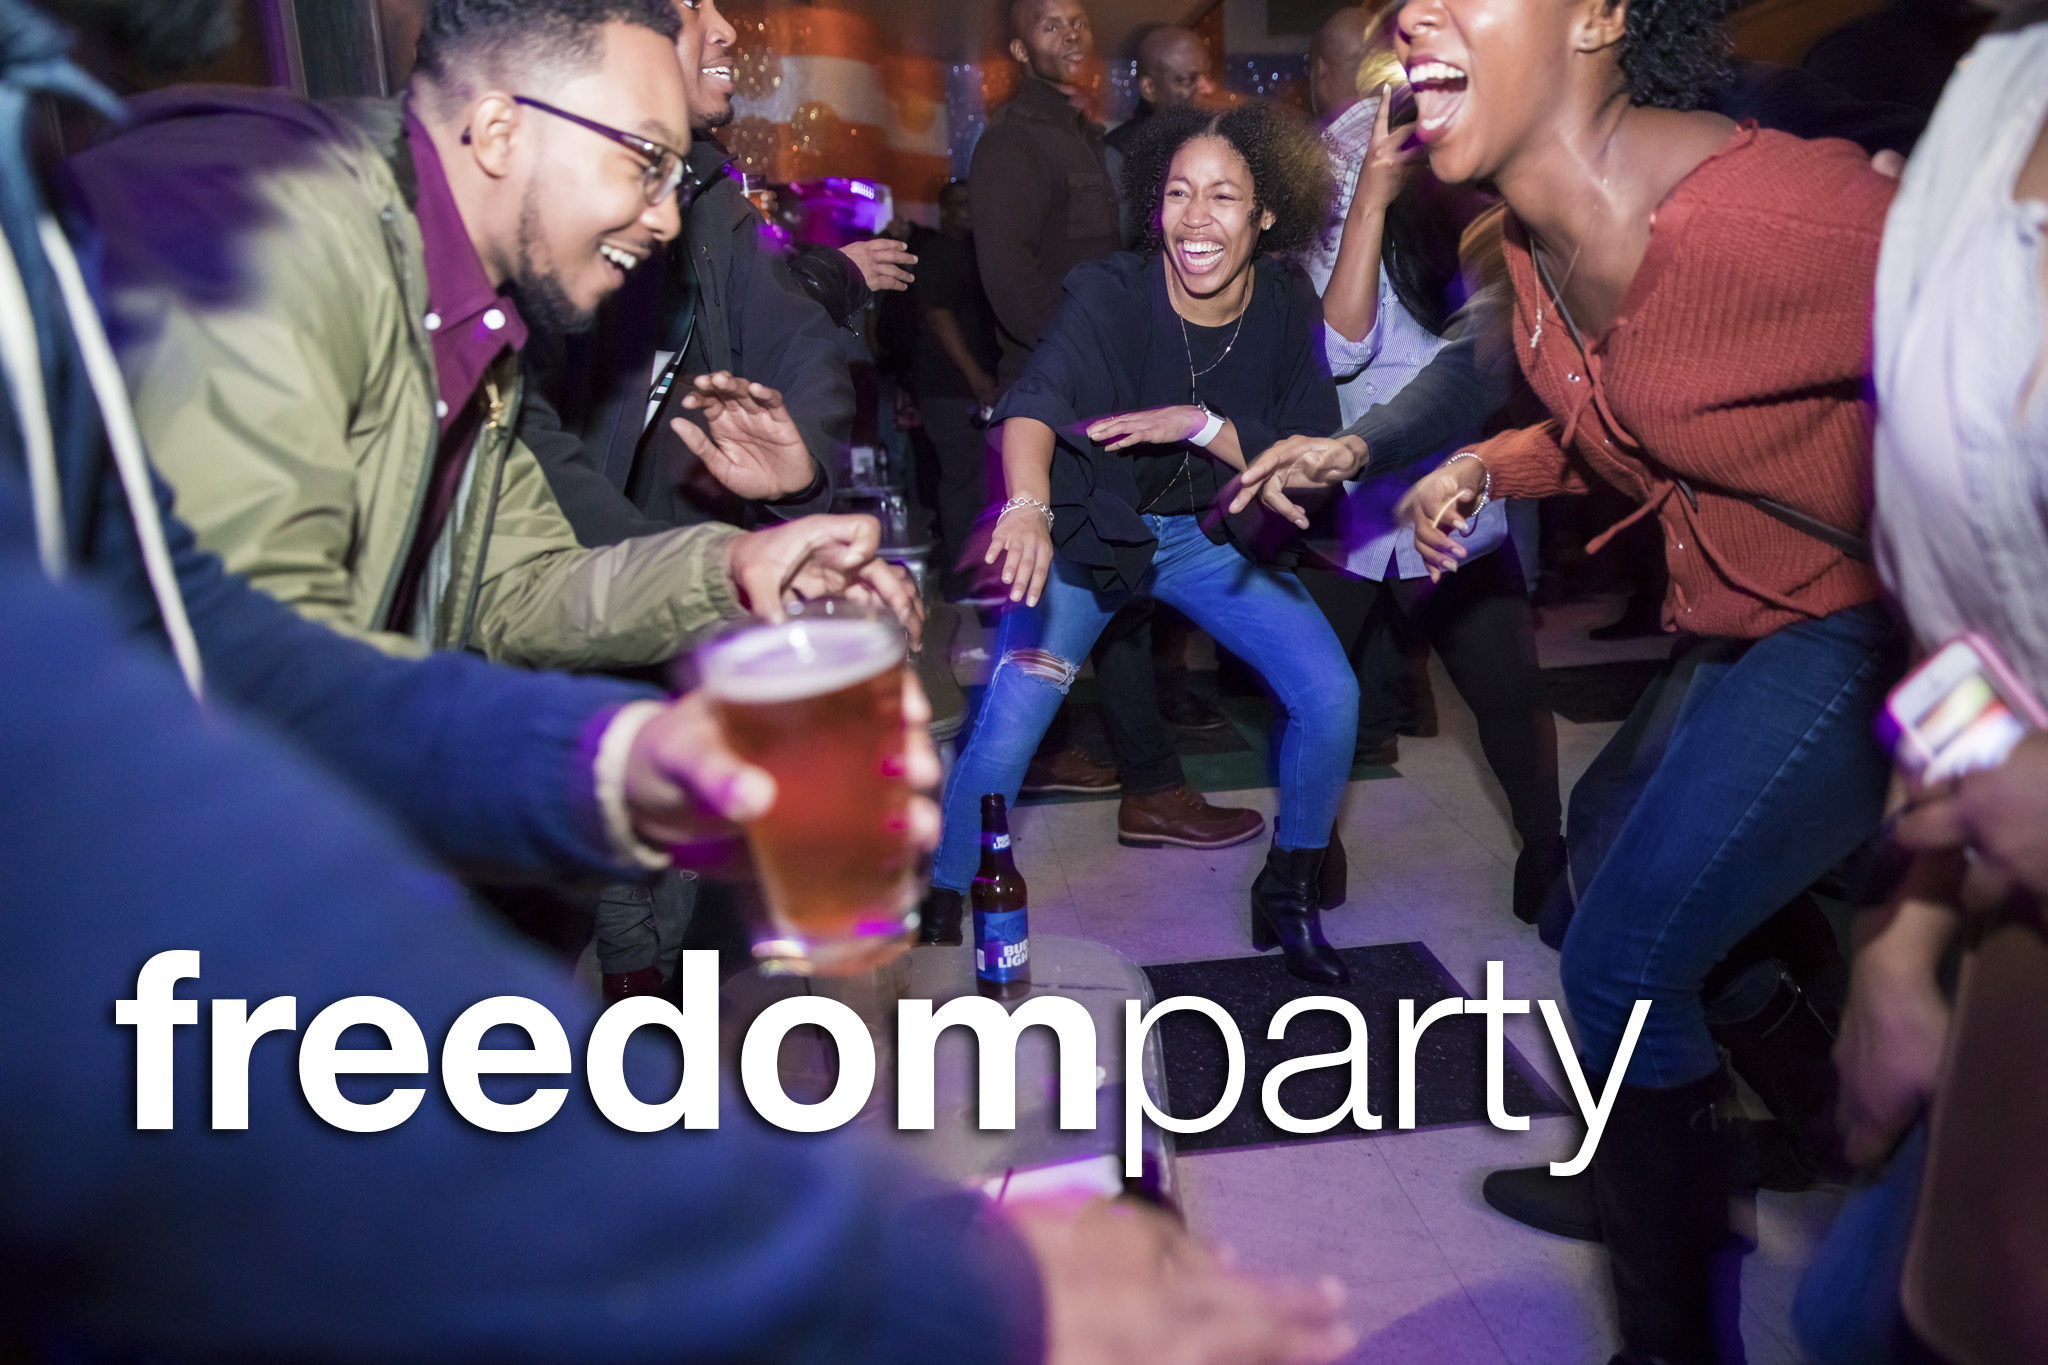 Freedom Party at Beauty Bar